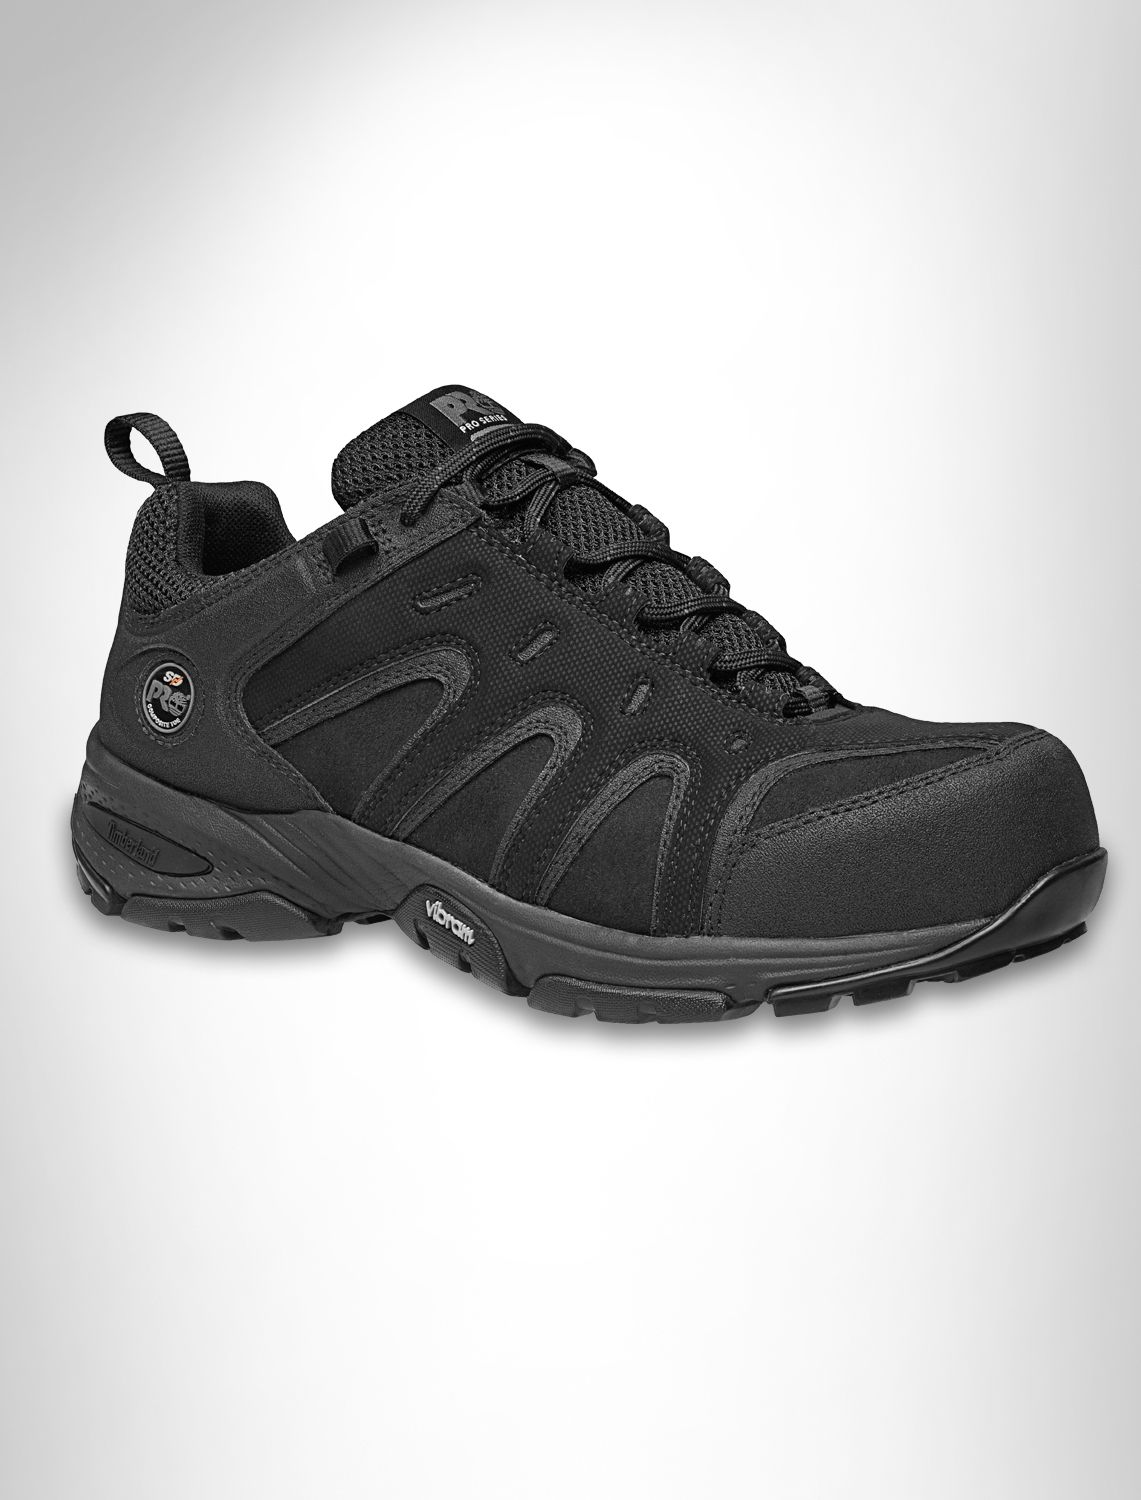 Timberland PRO® Wildcard ESD Safety Toe Hikers Tall men